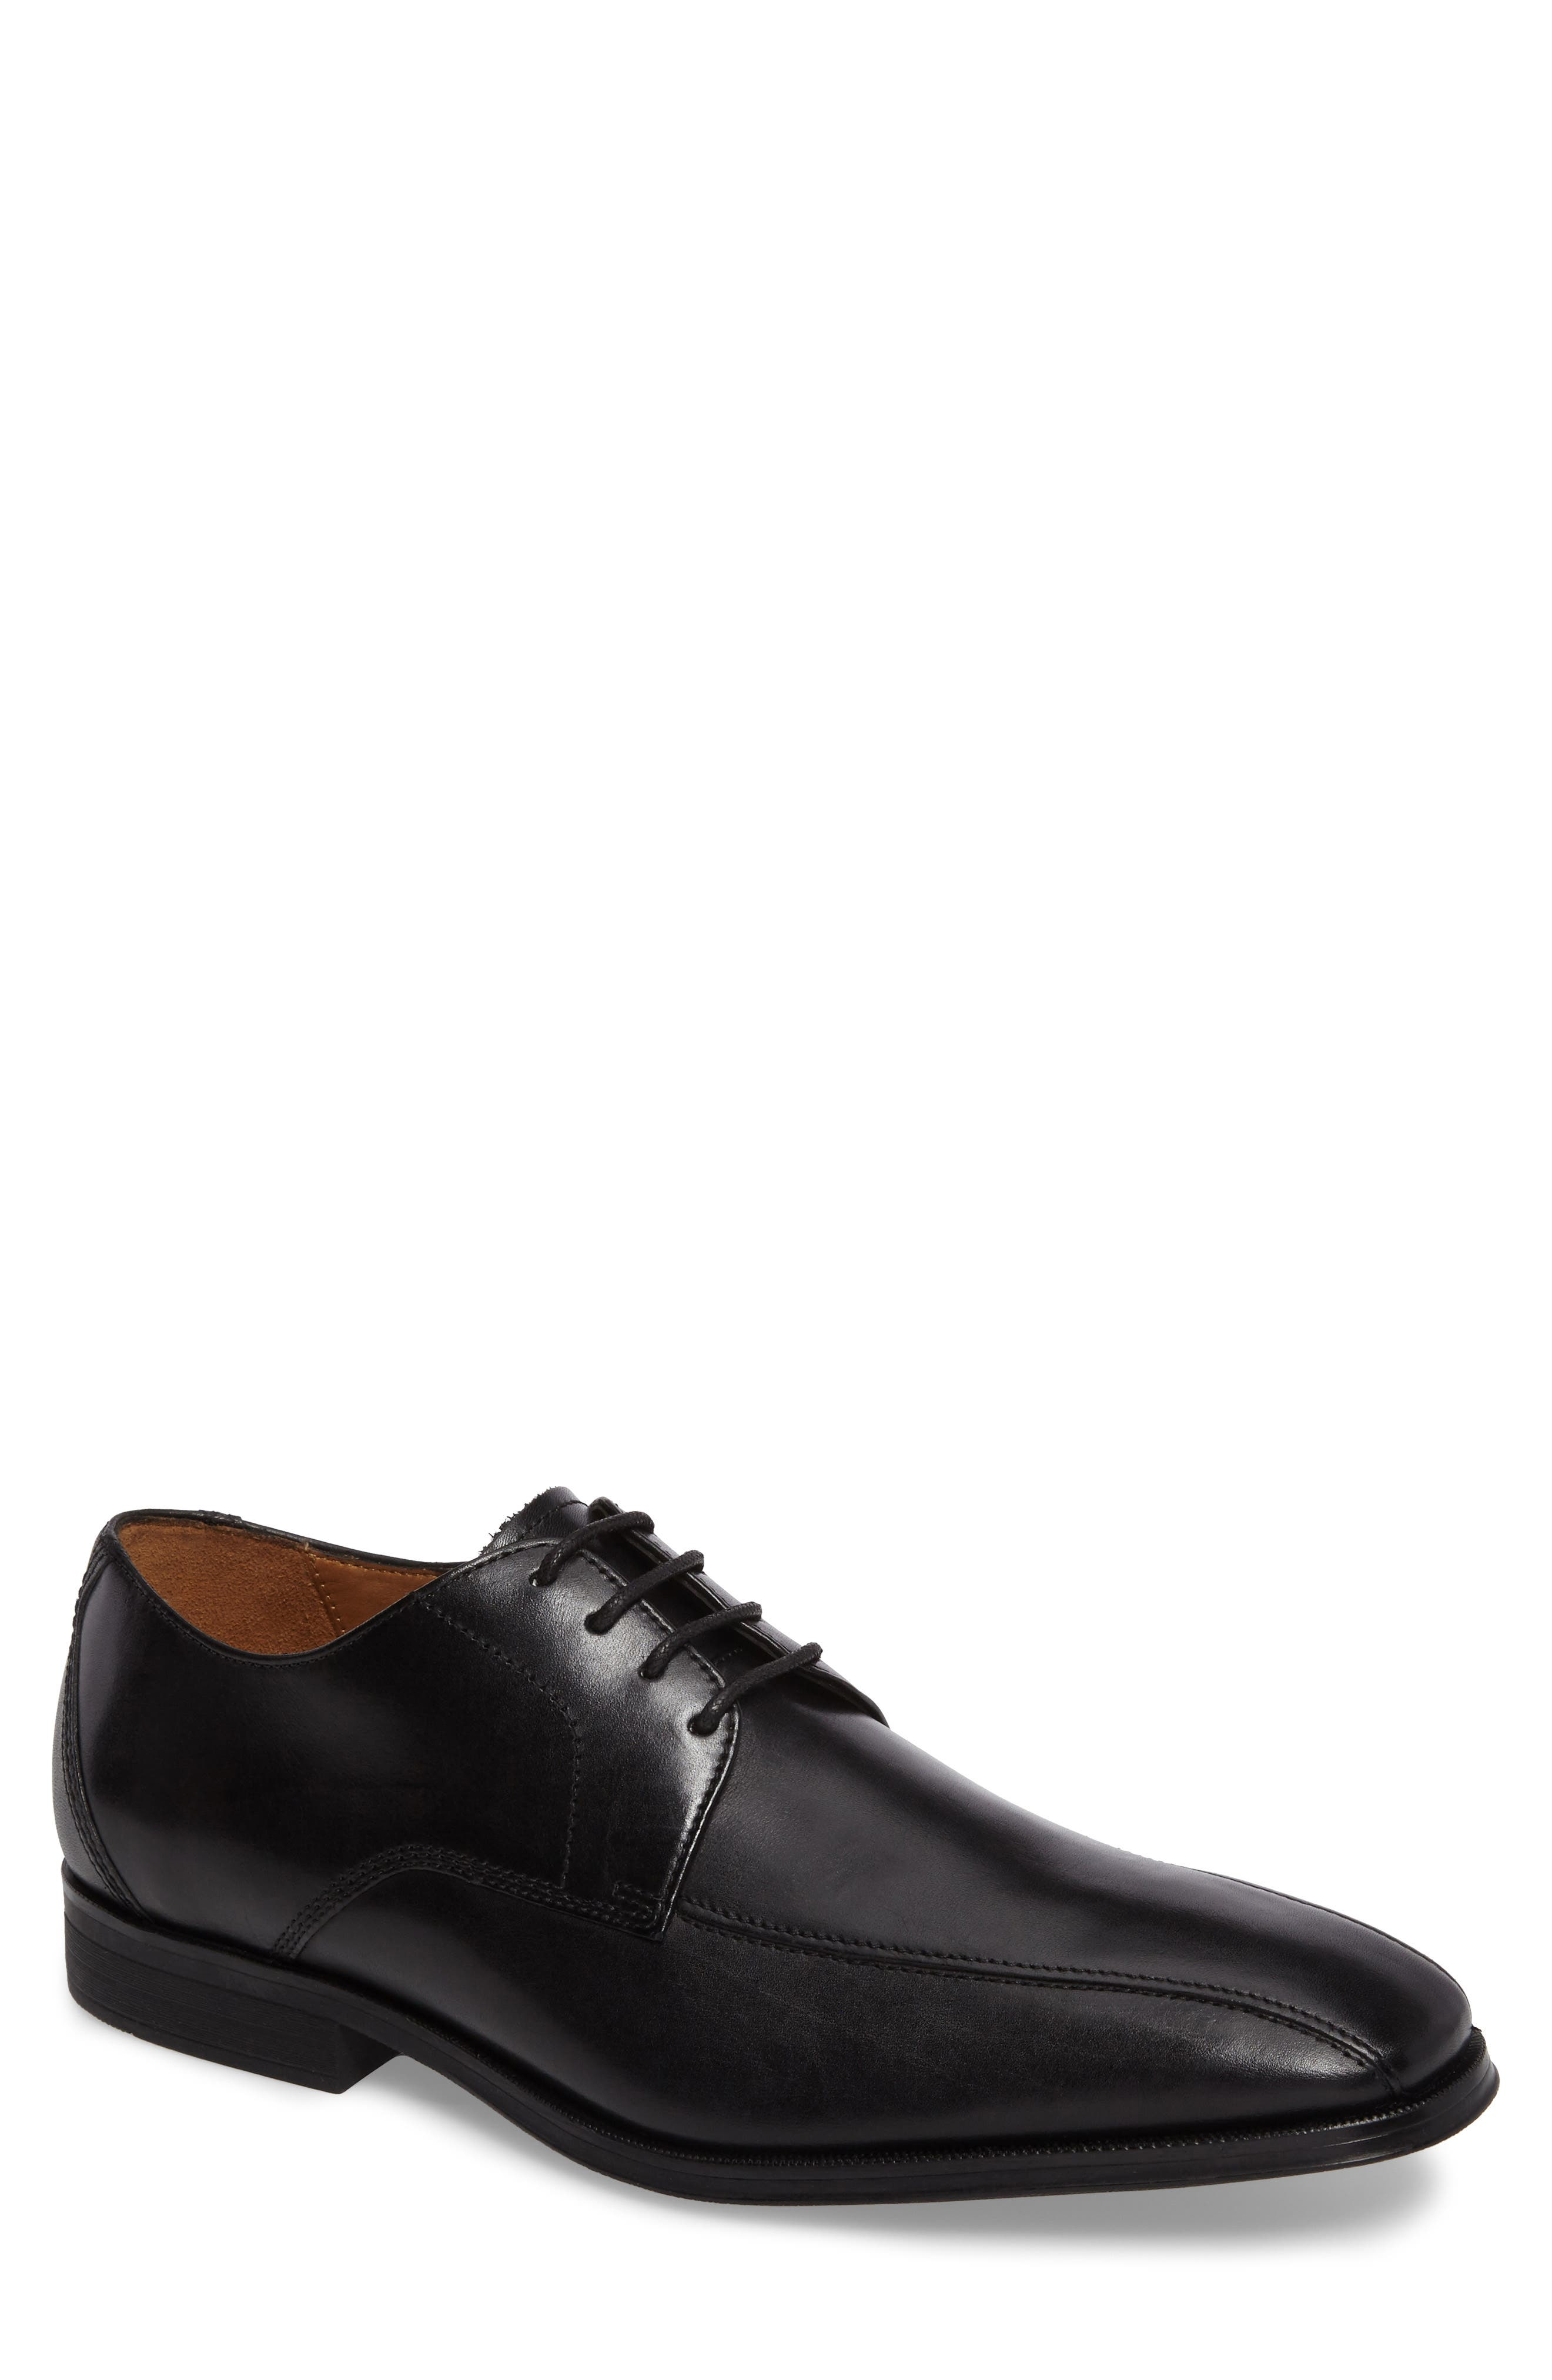 Clarks Gilman Mode Derby,                         Main,                         color, BLACK LEATHER